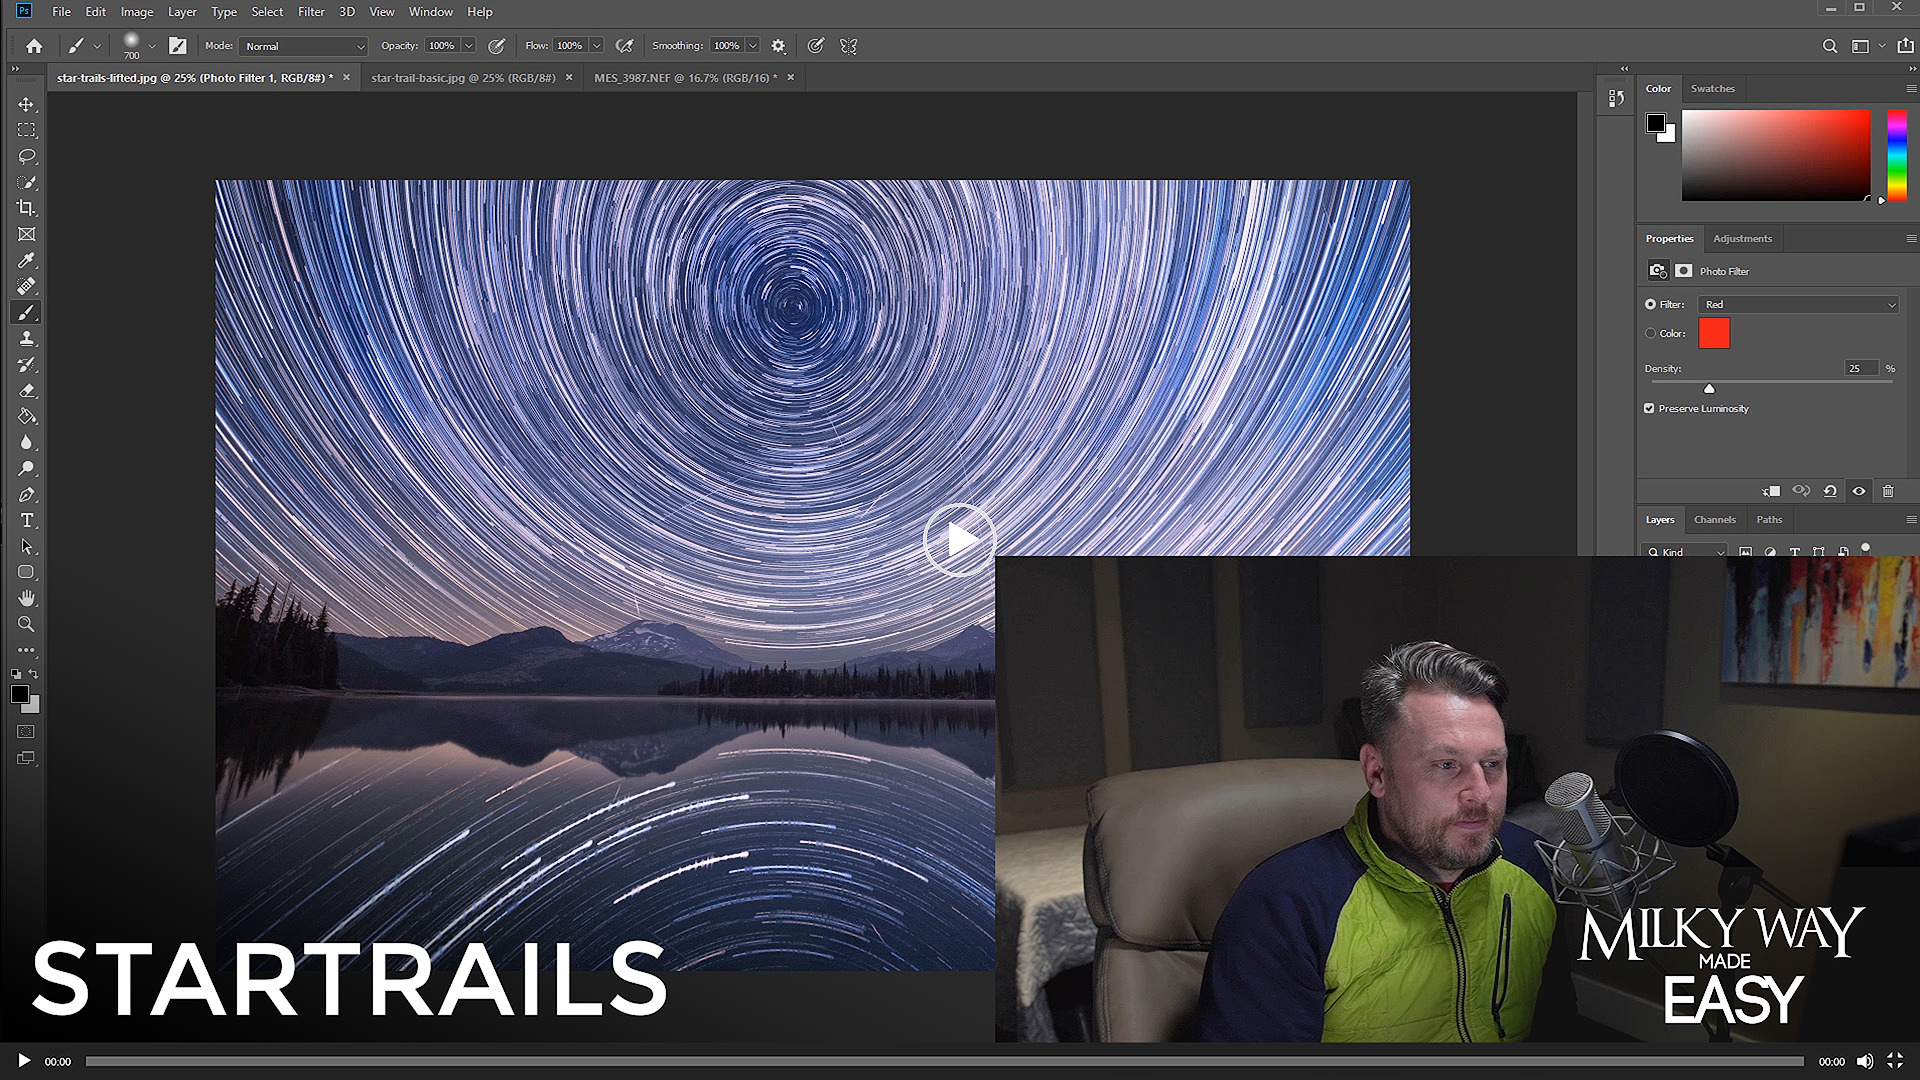 Night Sky Milky Way Tutorial Image